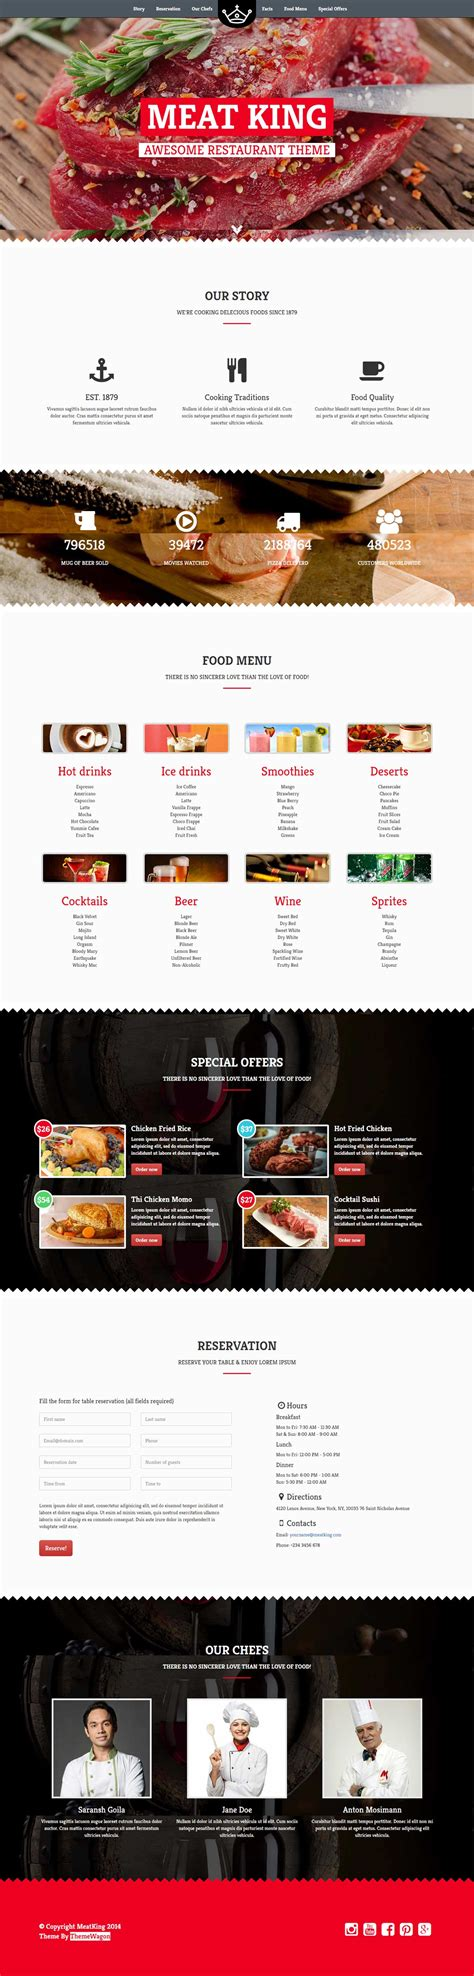 templates bootstrap html5 css3 meatking pro bootstrap html5 css3 restaurant website